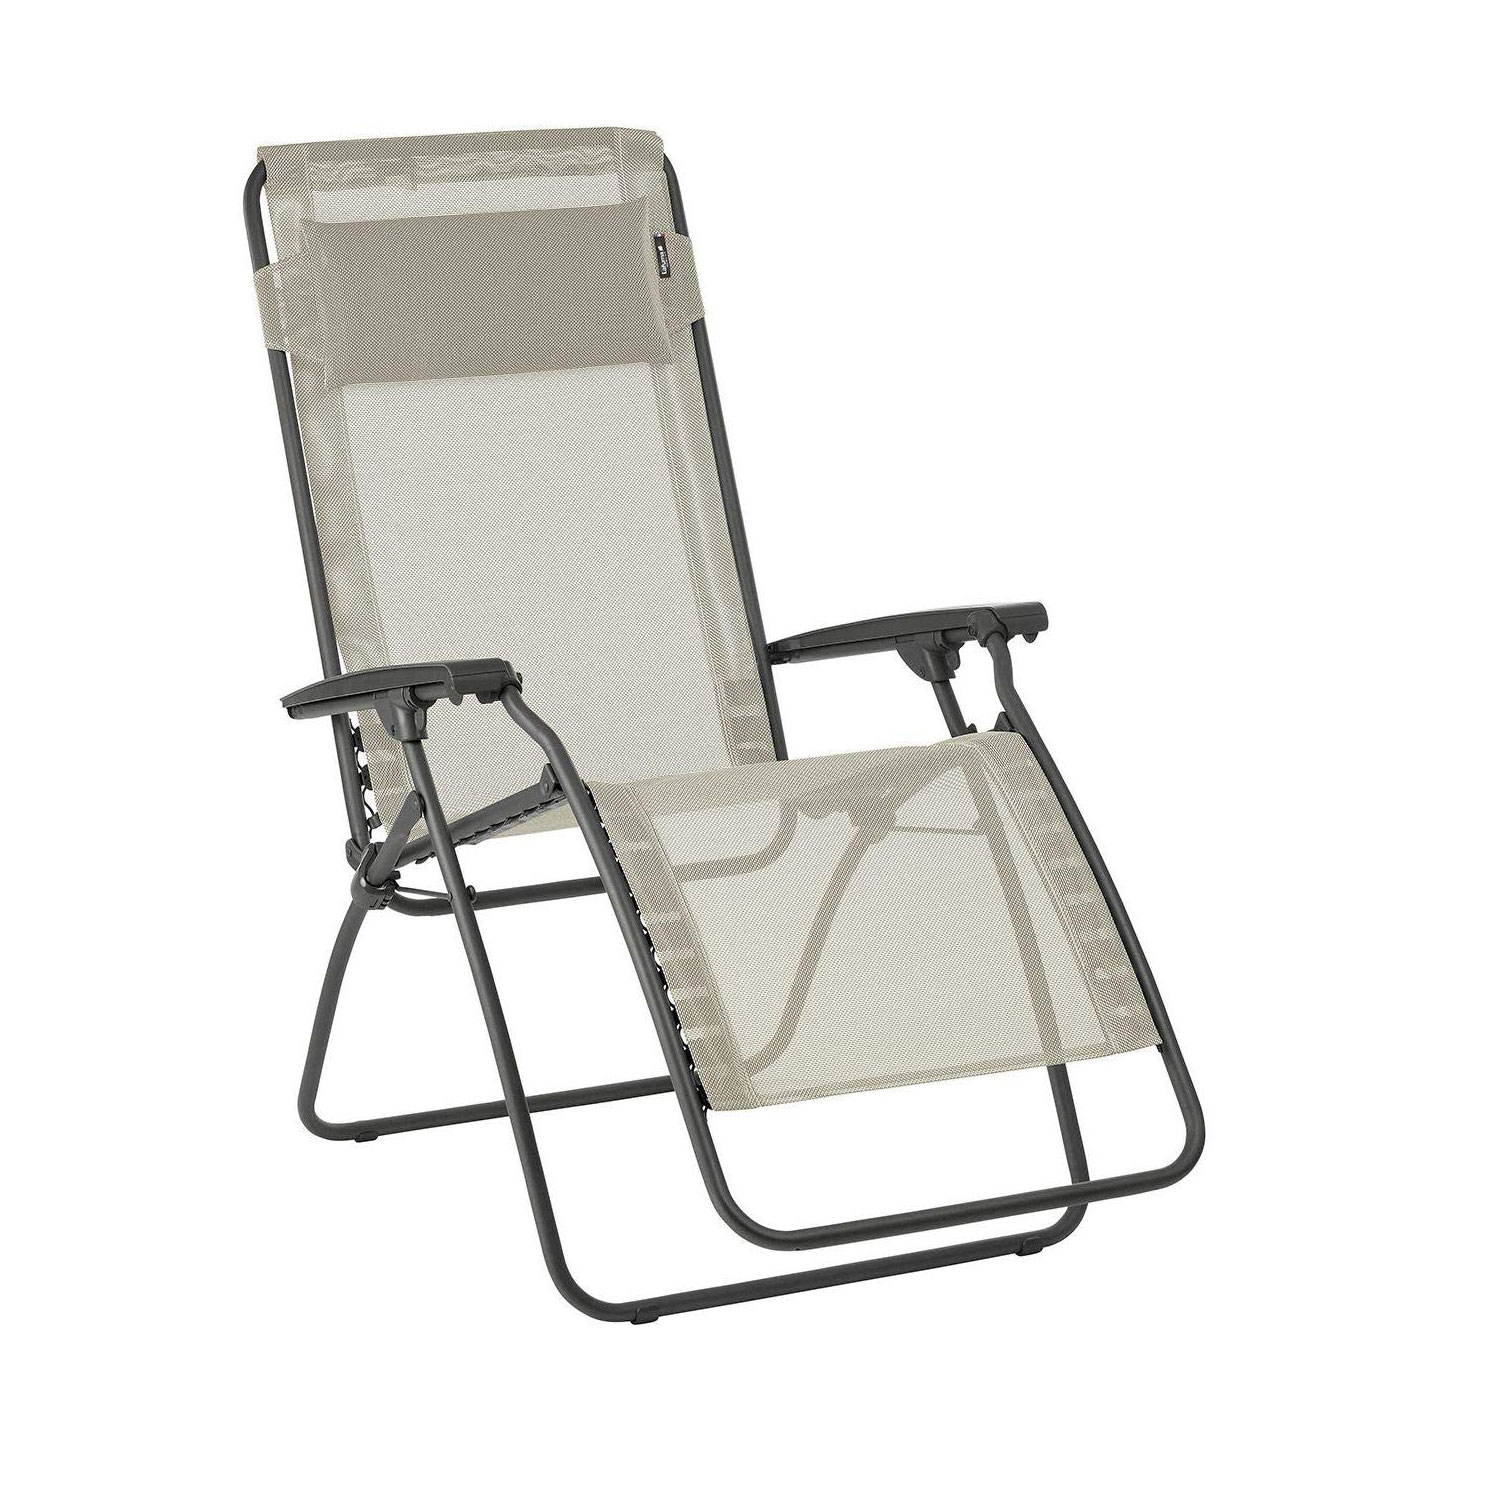 Lafuma R Clip Batyline Iso Relaxation 0 Gravity Outdoor Lounge Recliner Seigle Walmart Com Walmart Com